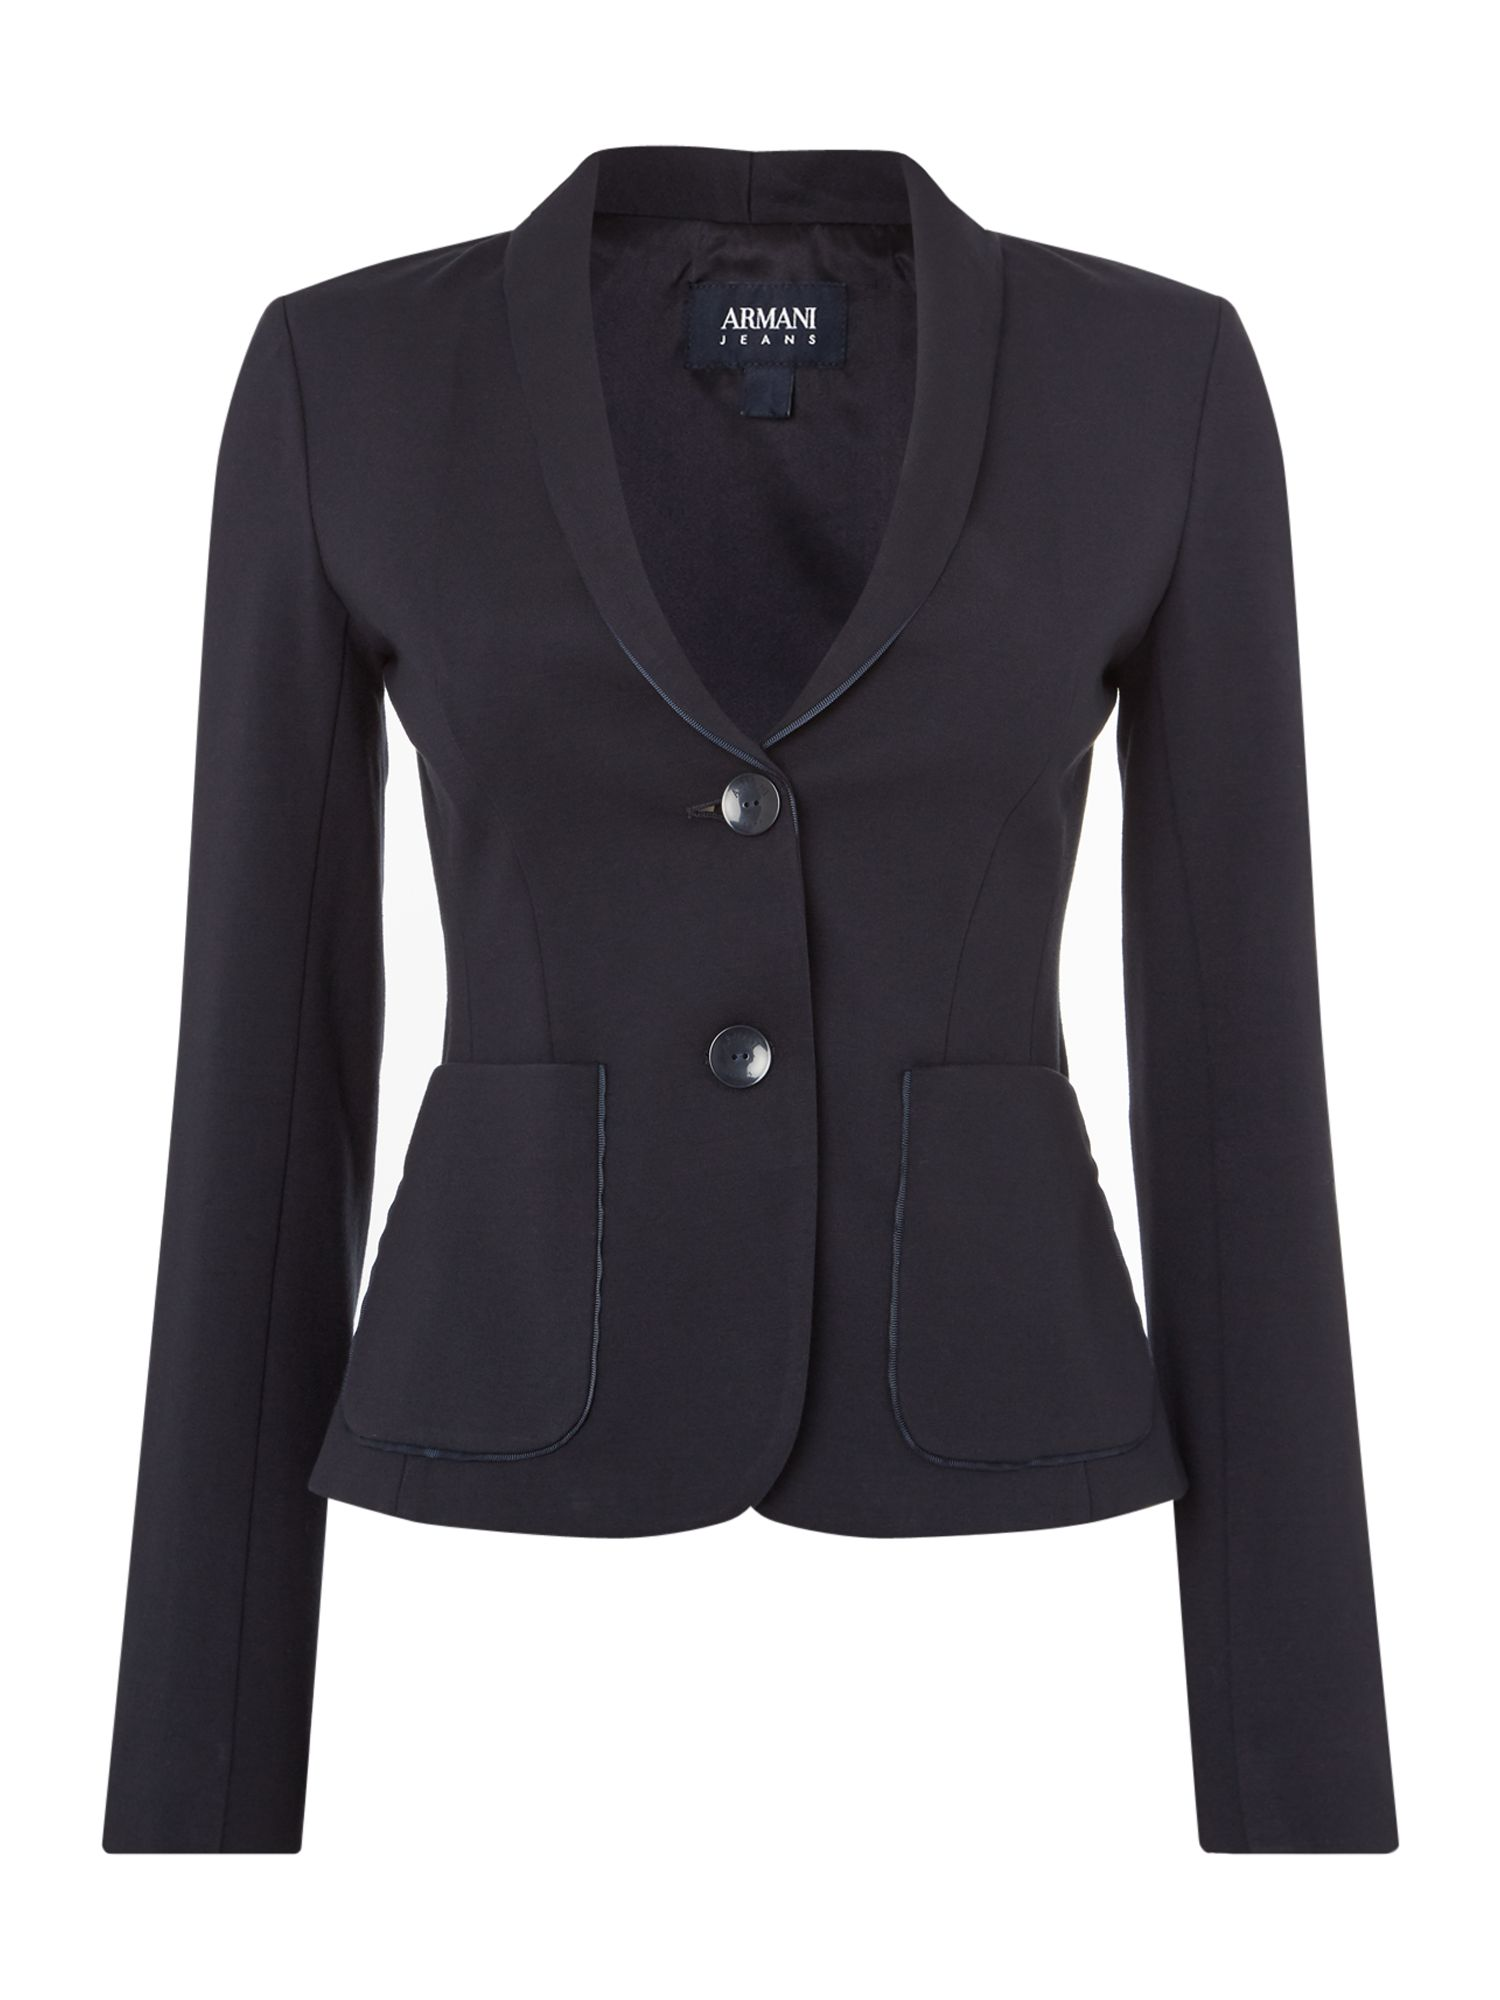 Armani Jeans Fitted blazer jacket in blu notte, Blue